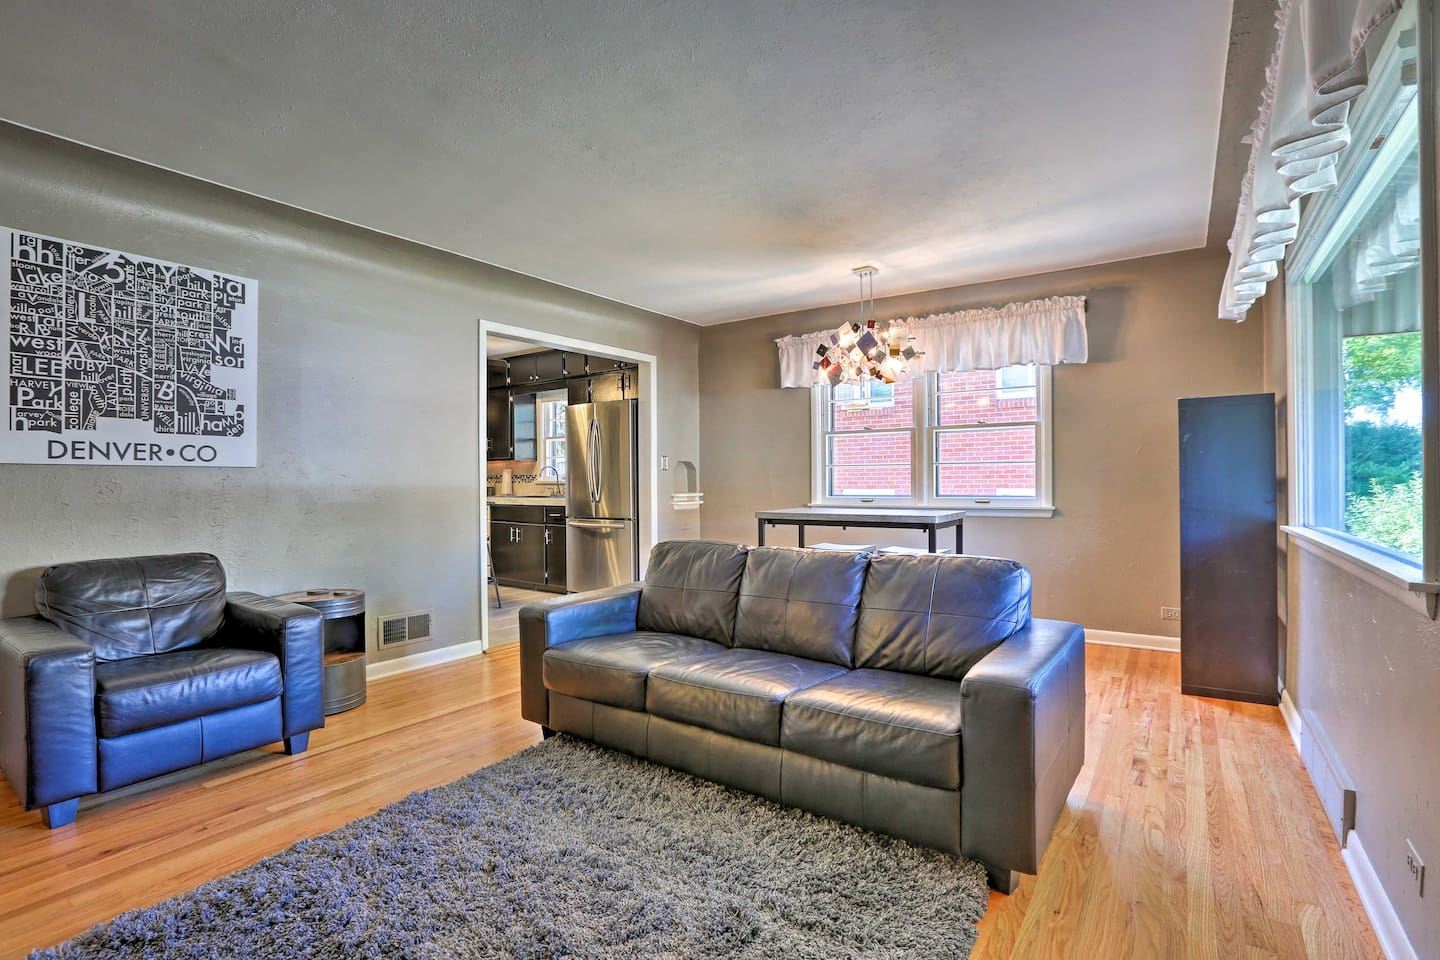 Escape to Denver at this charming 2-bed, 1-bath vacation rental home!